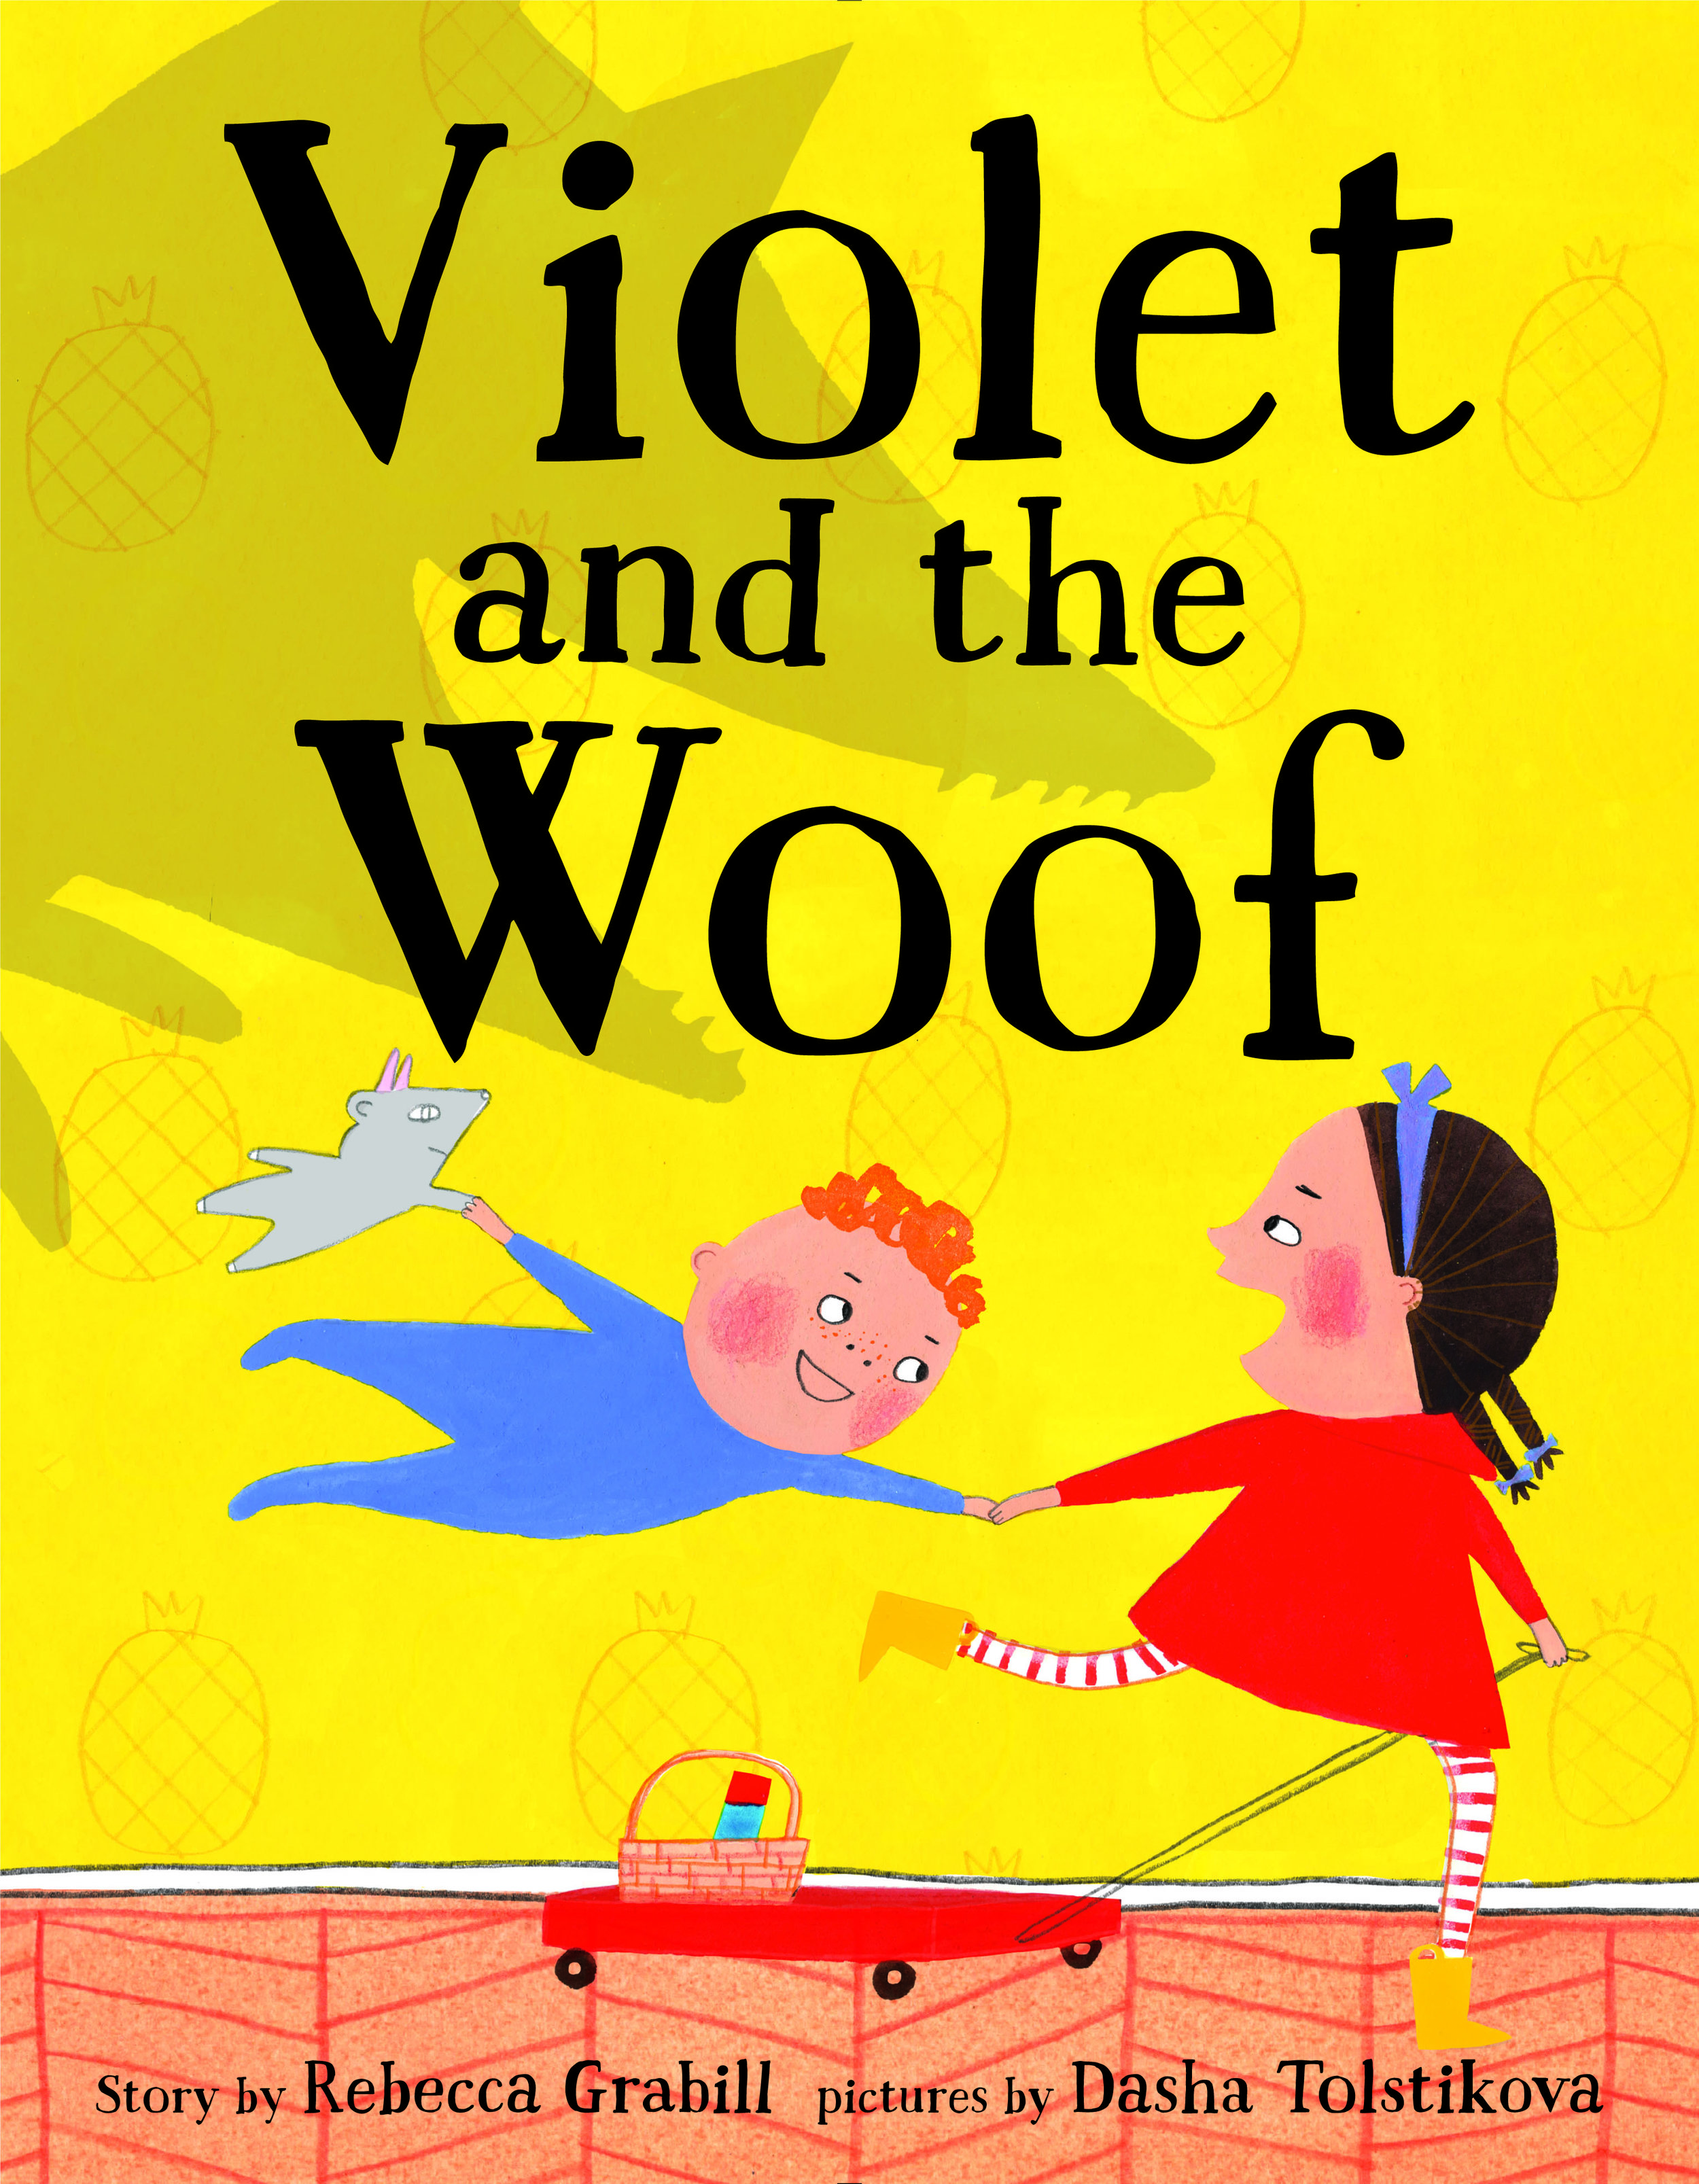 Violet and the Woof by Rebecca Grabill